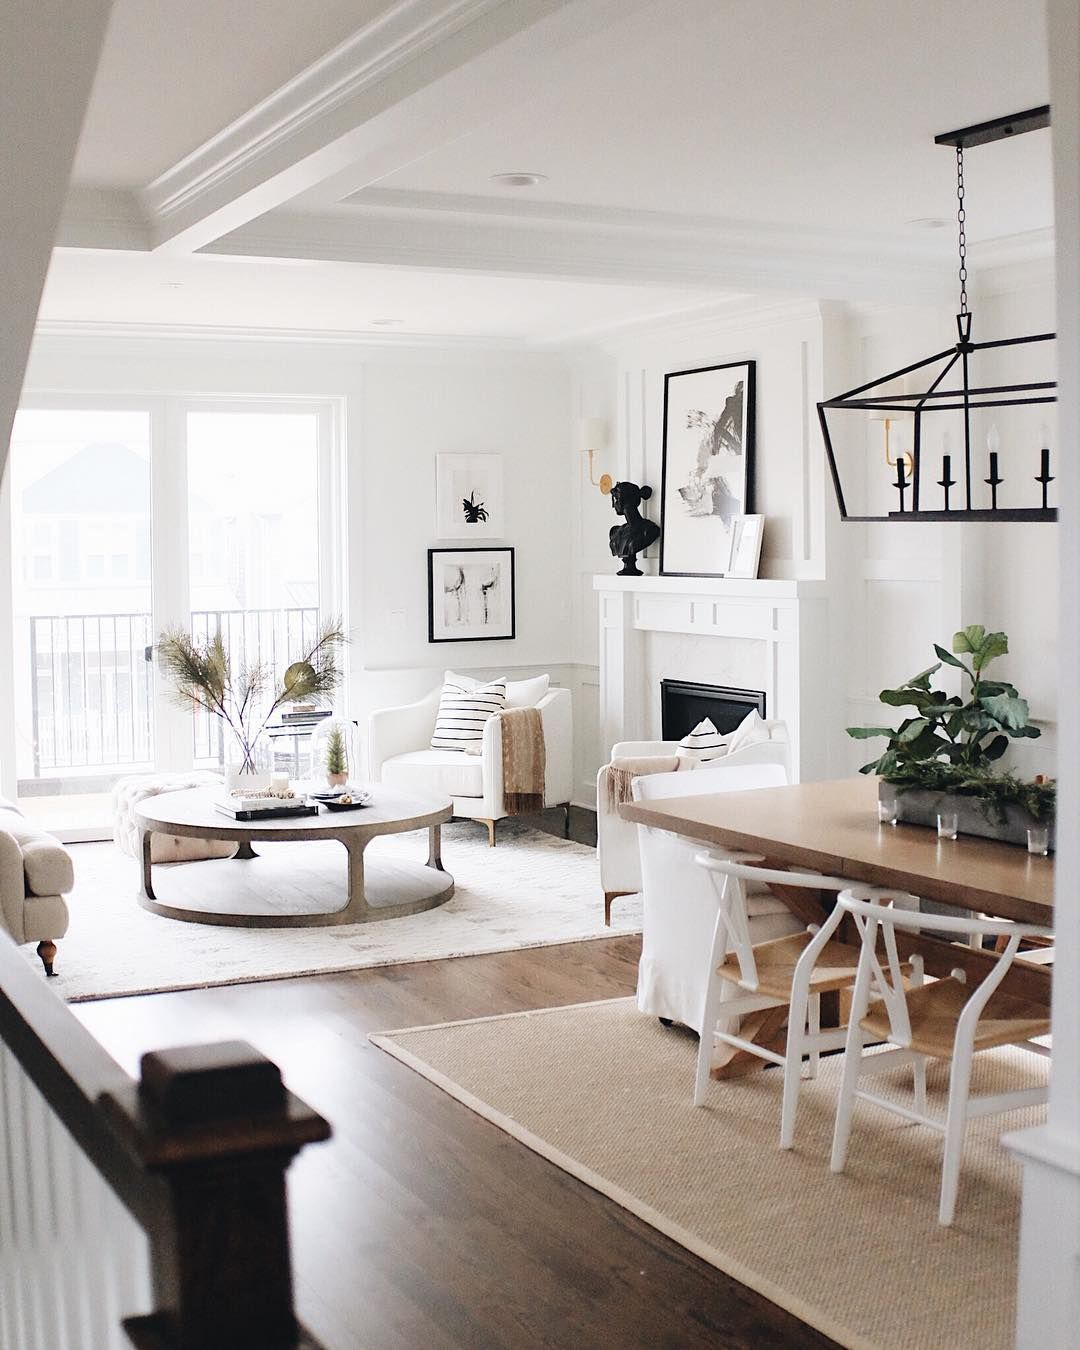 More information also  mix of mid century modern bohemian and industrial interior style rh pinterest